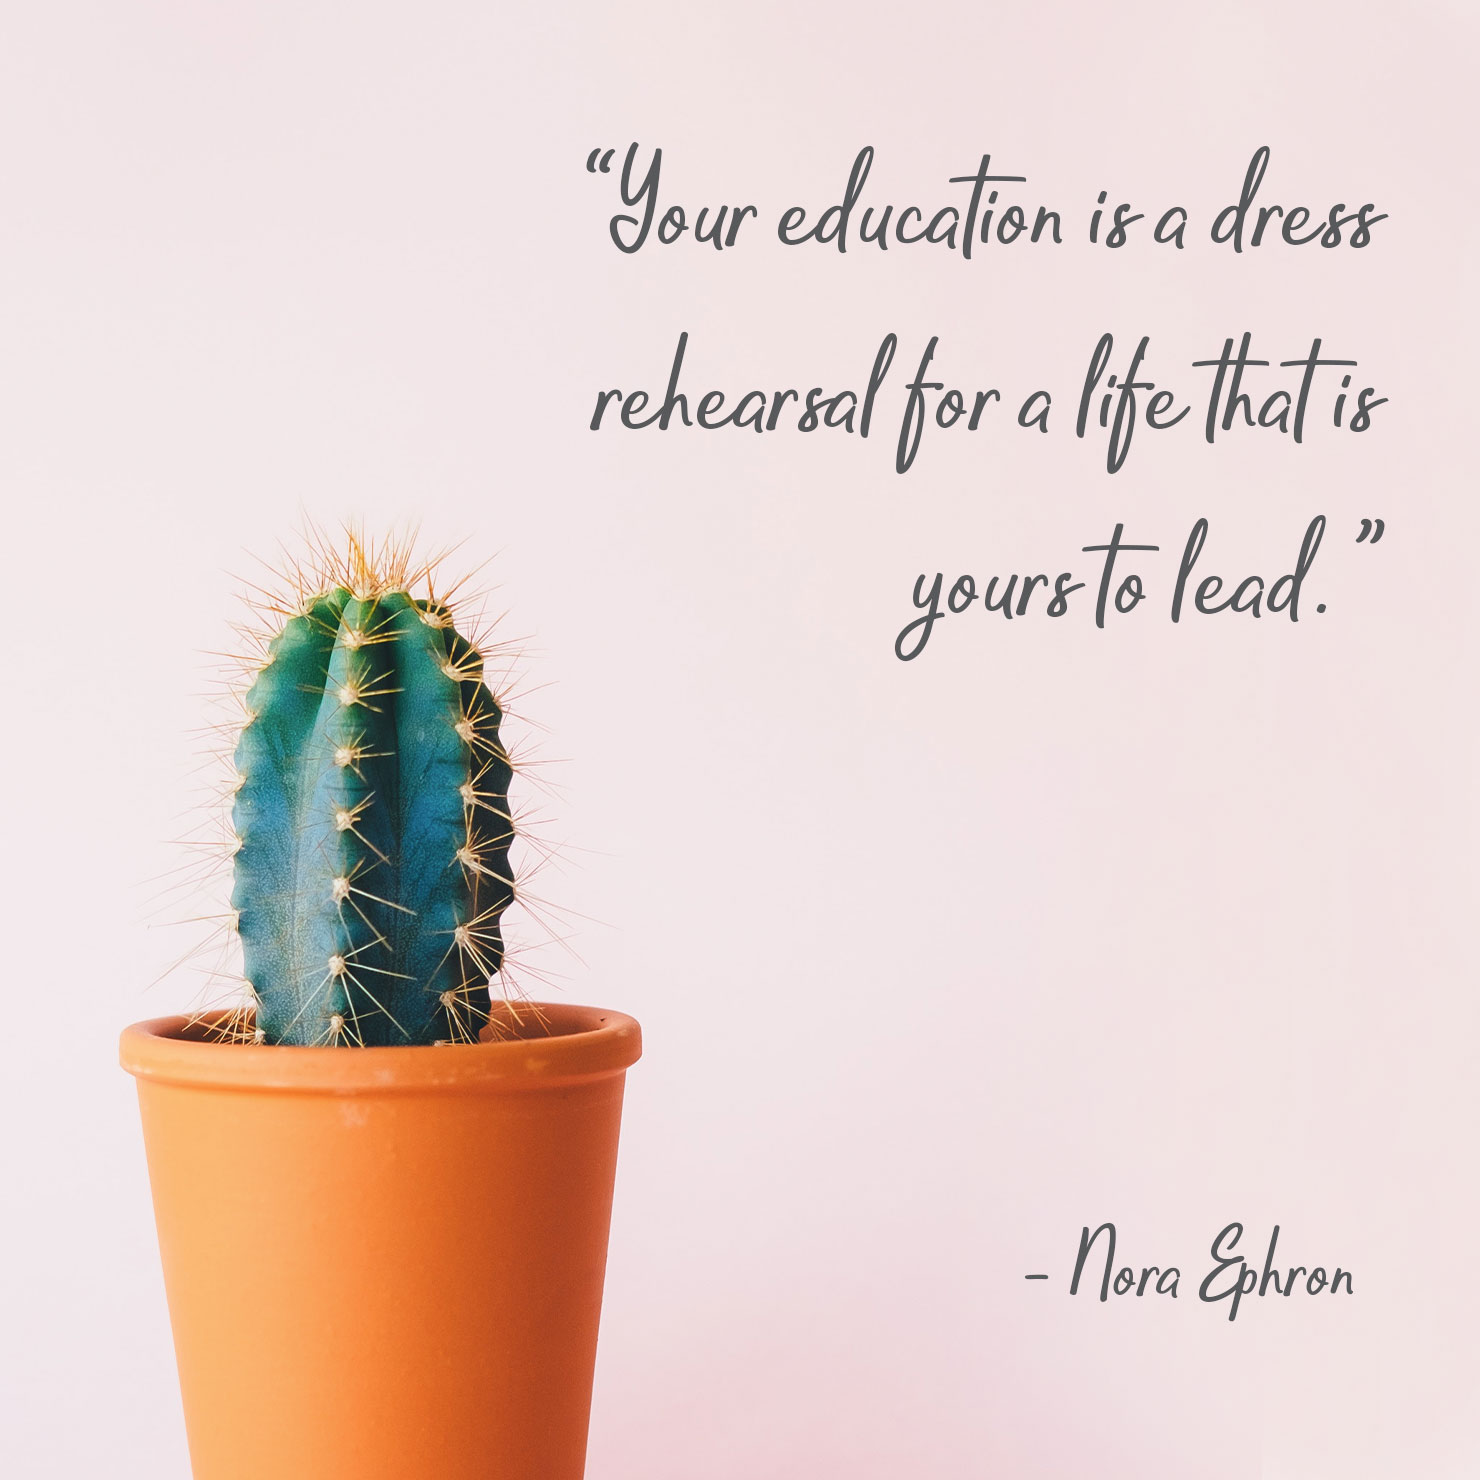 college graduation quote: your education is a dress rehearsal for a life that is yours to lead - Nora Ephron